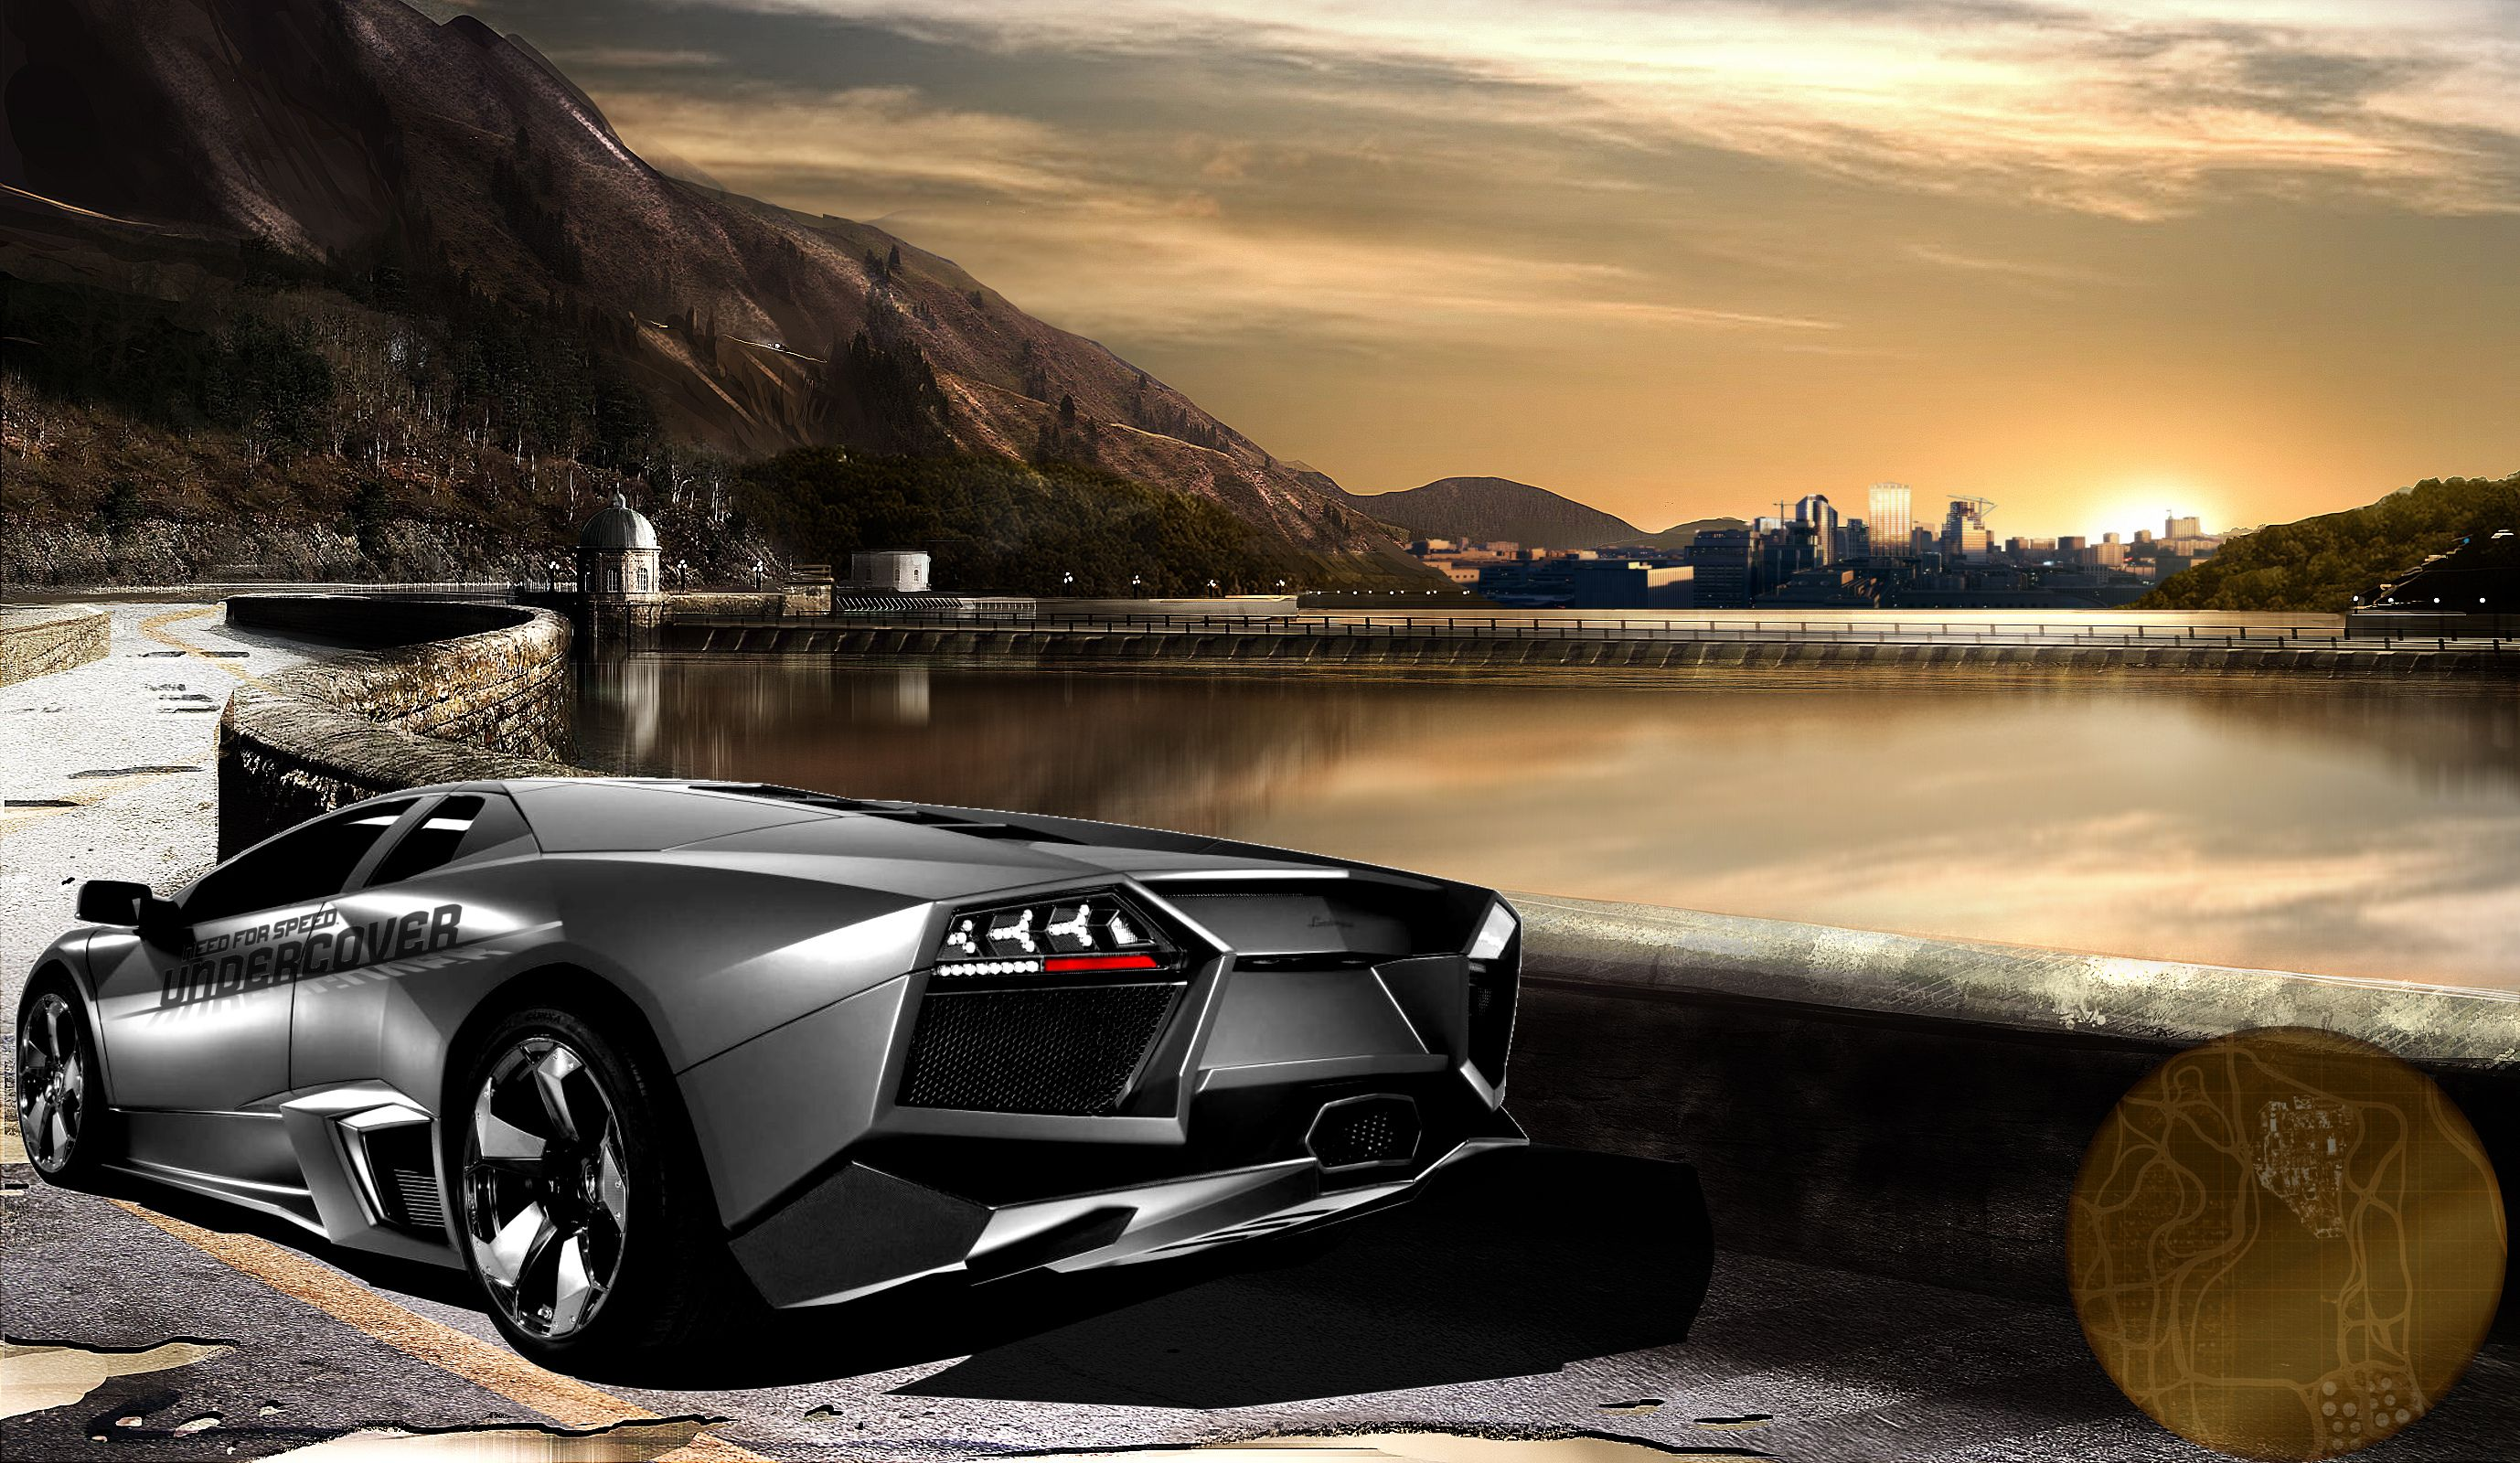 44d7b4a25a7e55dc939348e55ace0230 Outstanding Bugatti Veyron Need for Speed Underground 2 Cars Trend